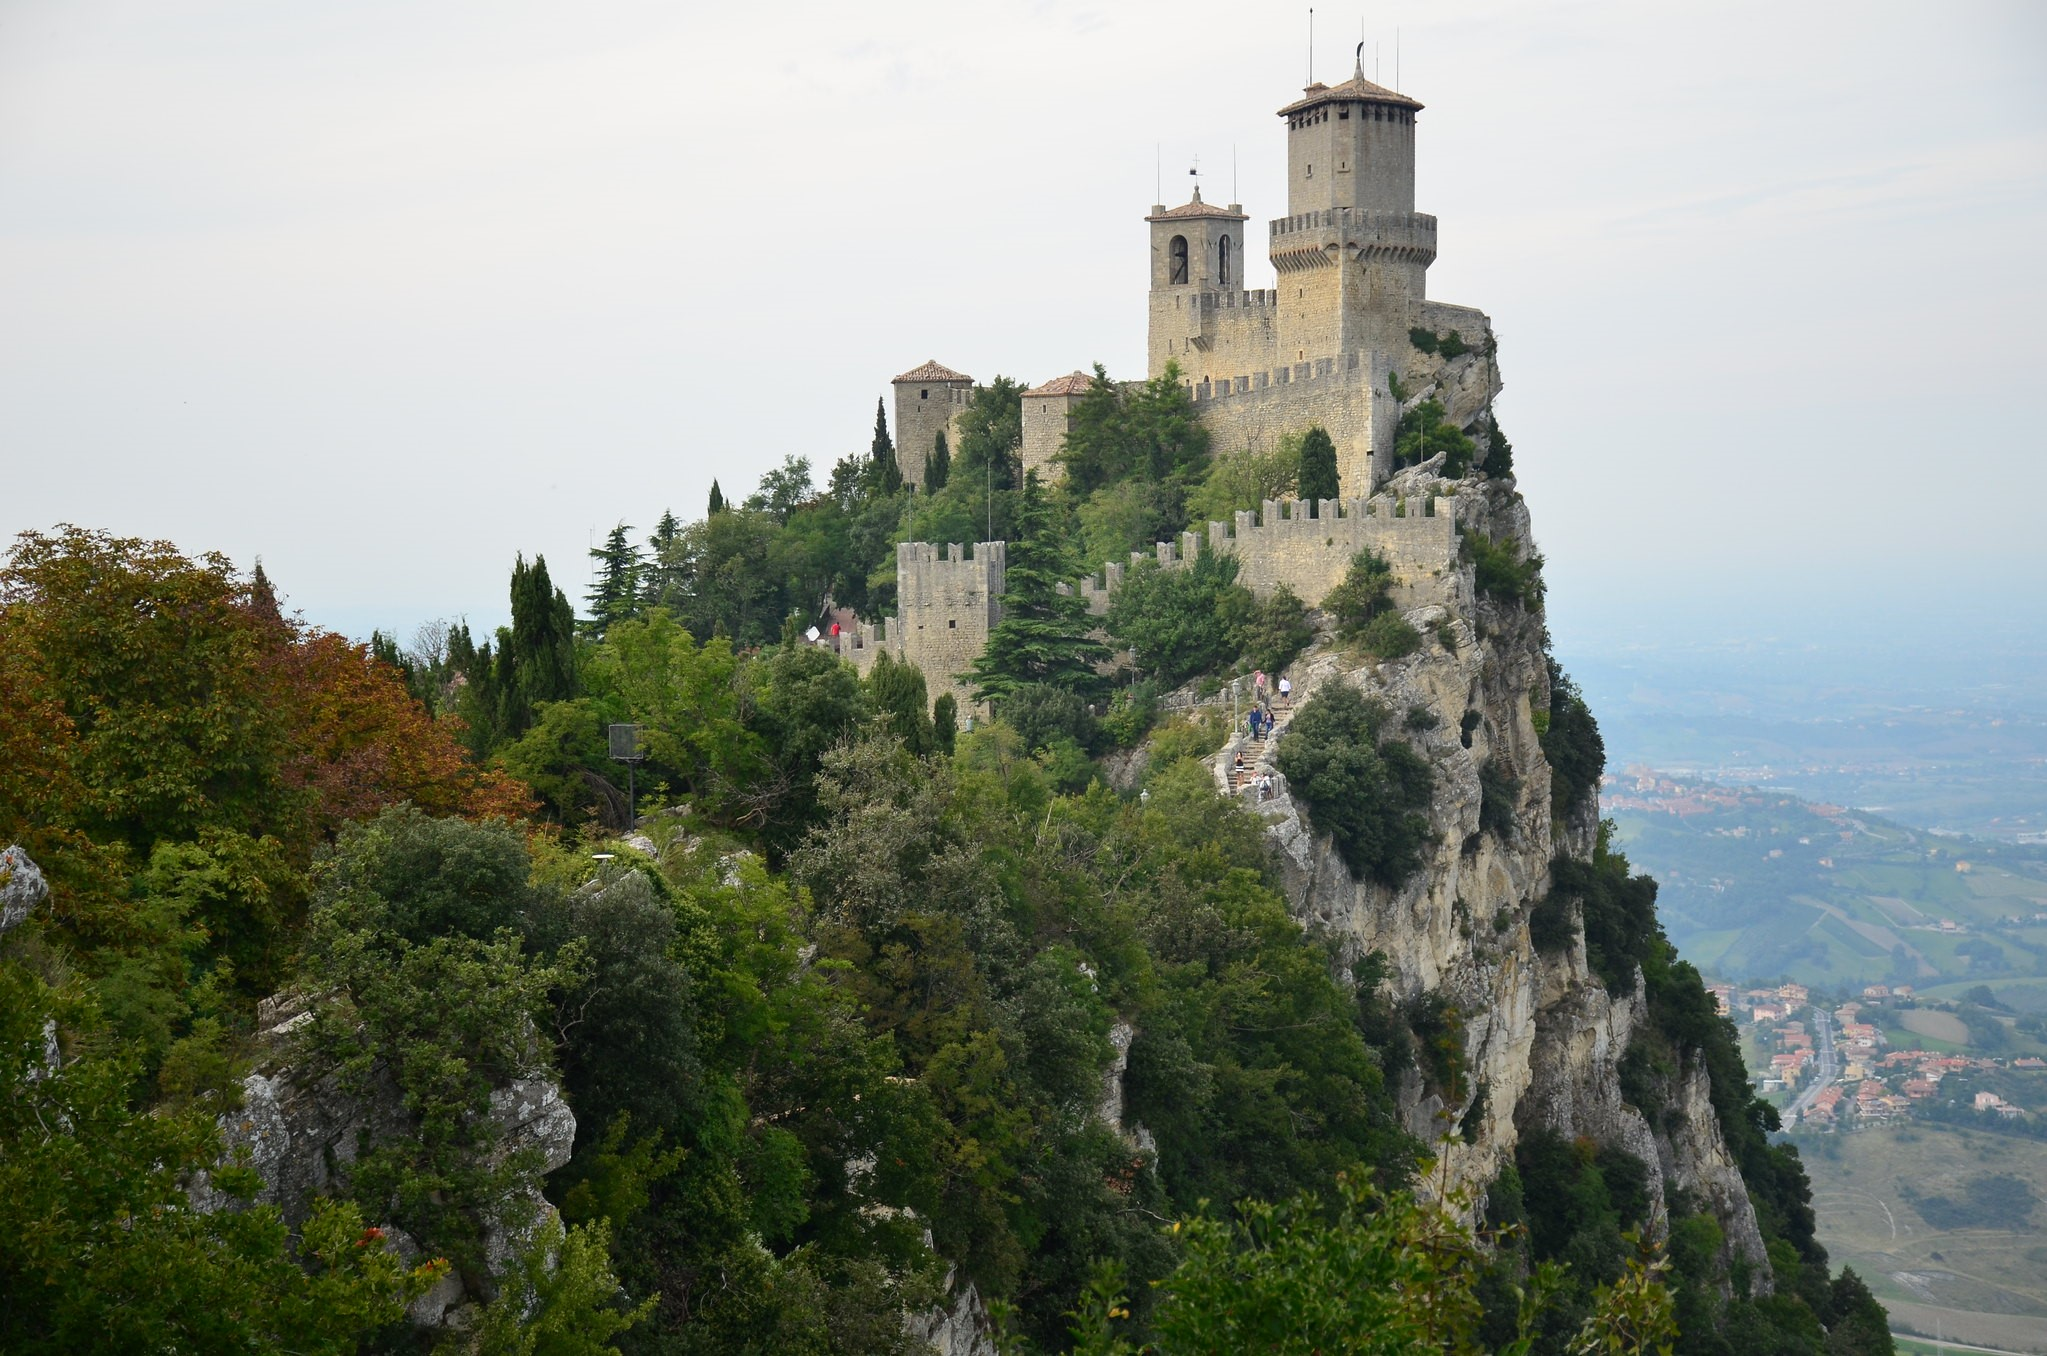 Top 10 Facts About Living Conditions in San Marino | The Borgen Project